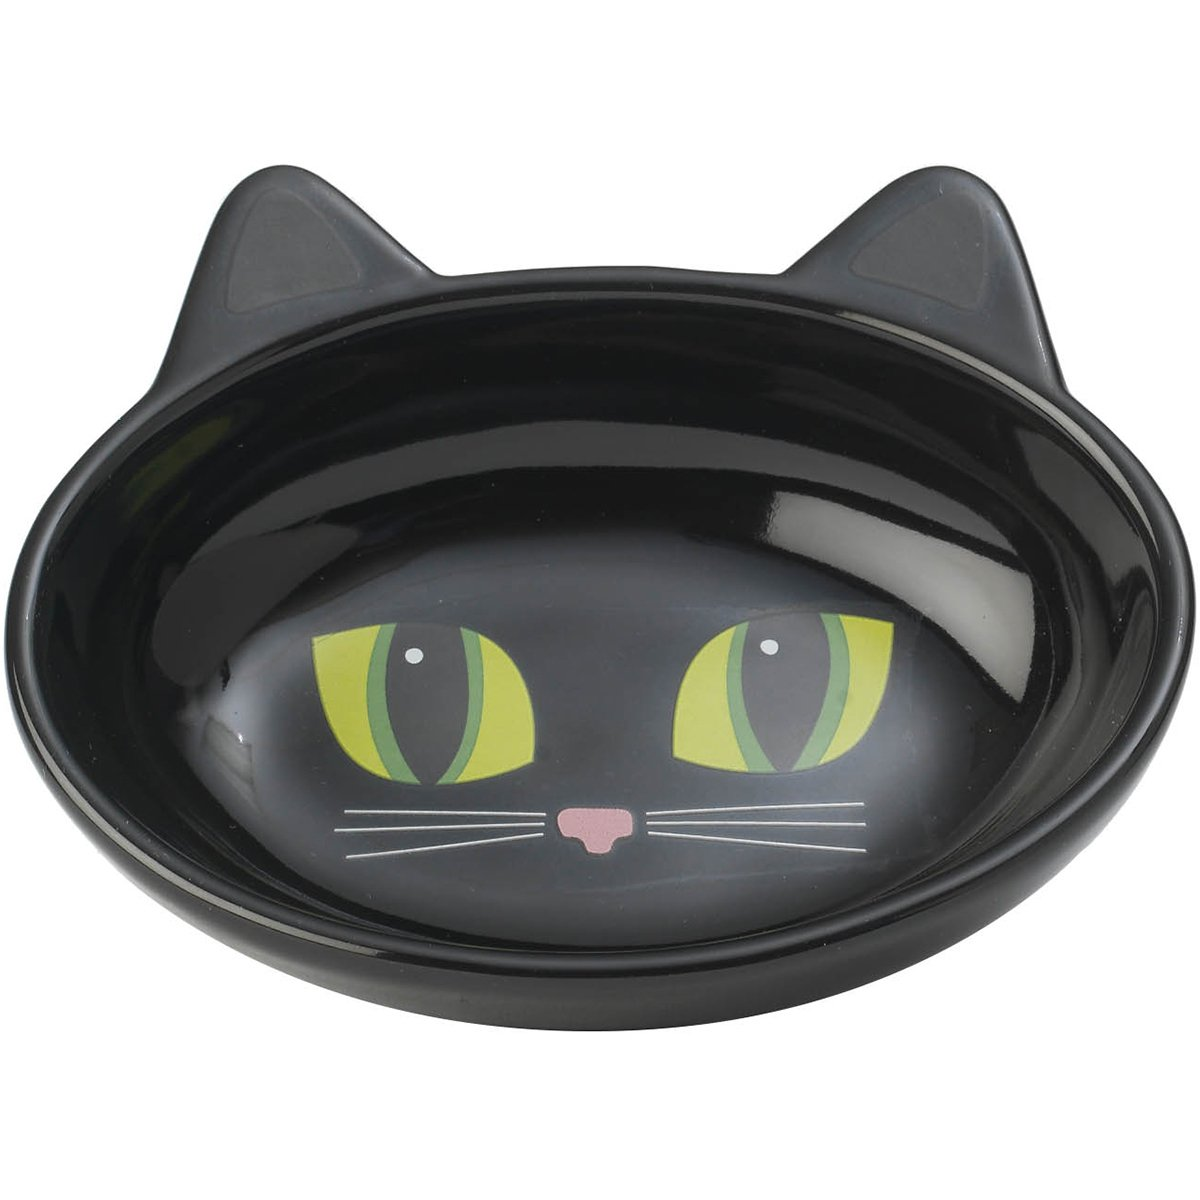 PetRageous Oval Frisky Kitty Pet Bowl, 5.5-Inch, Black